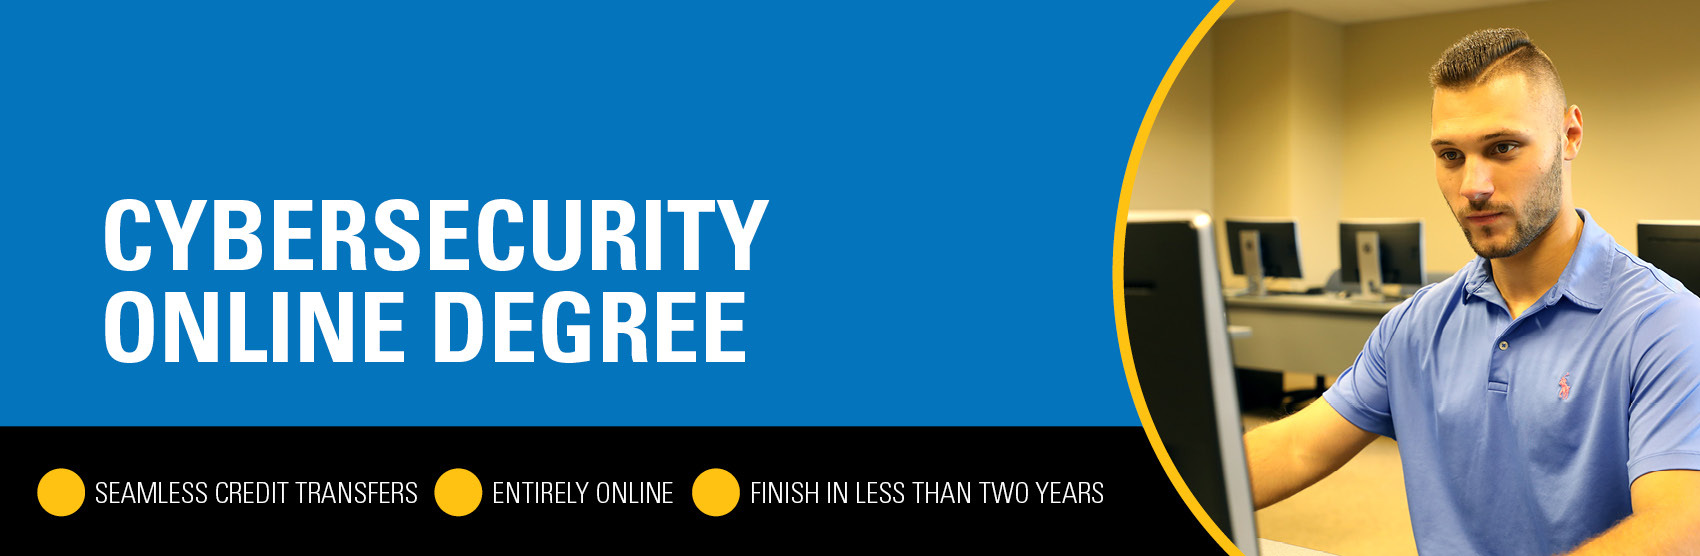 Online degree completion - Cybersecurity banner